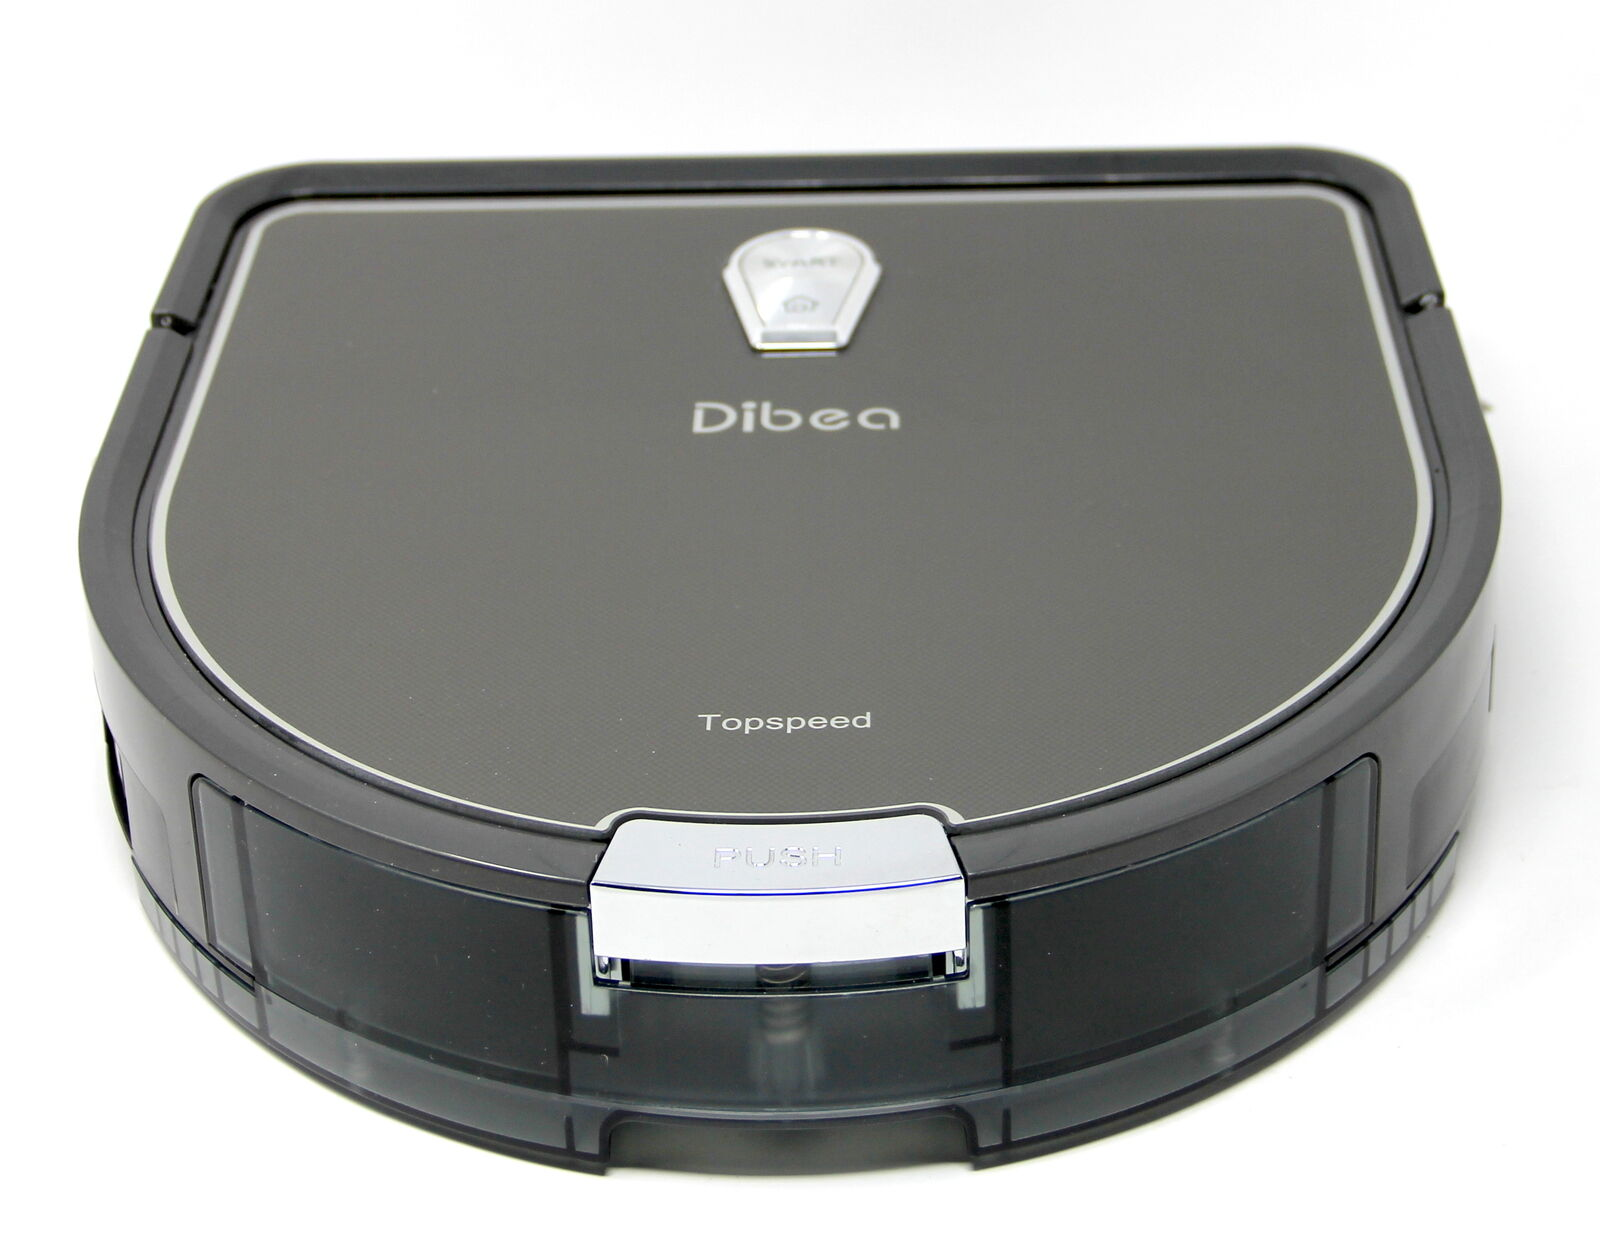 Dibea Robotic Vacuum and Mop Cleaner, Strong Suction Self-Charging DT966